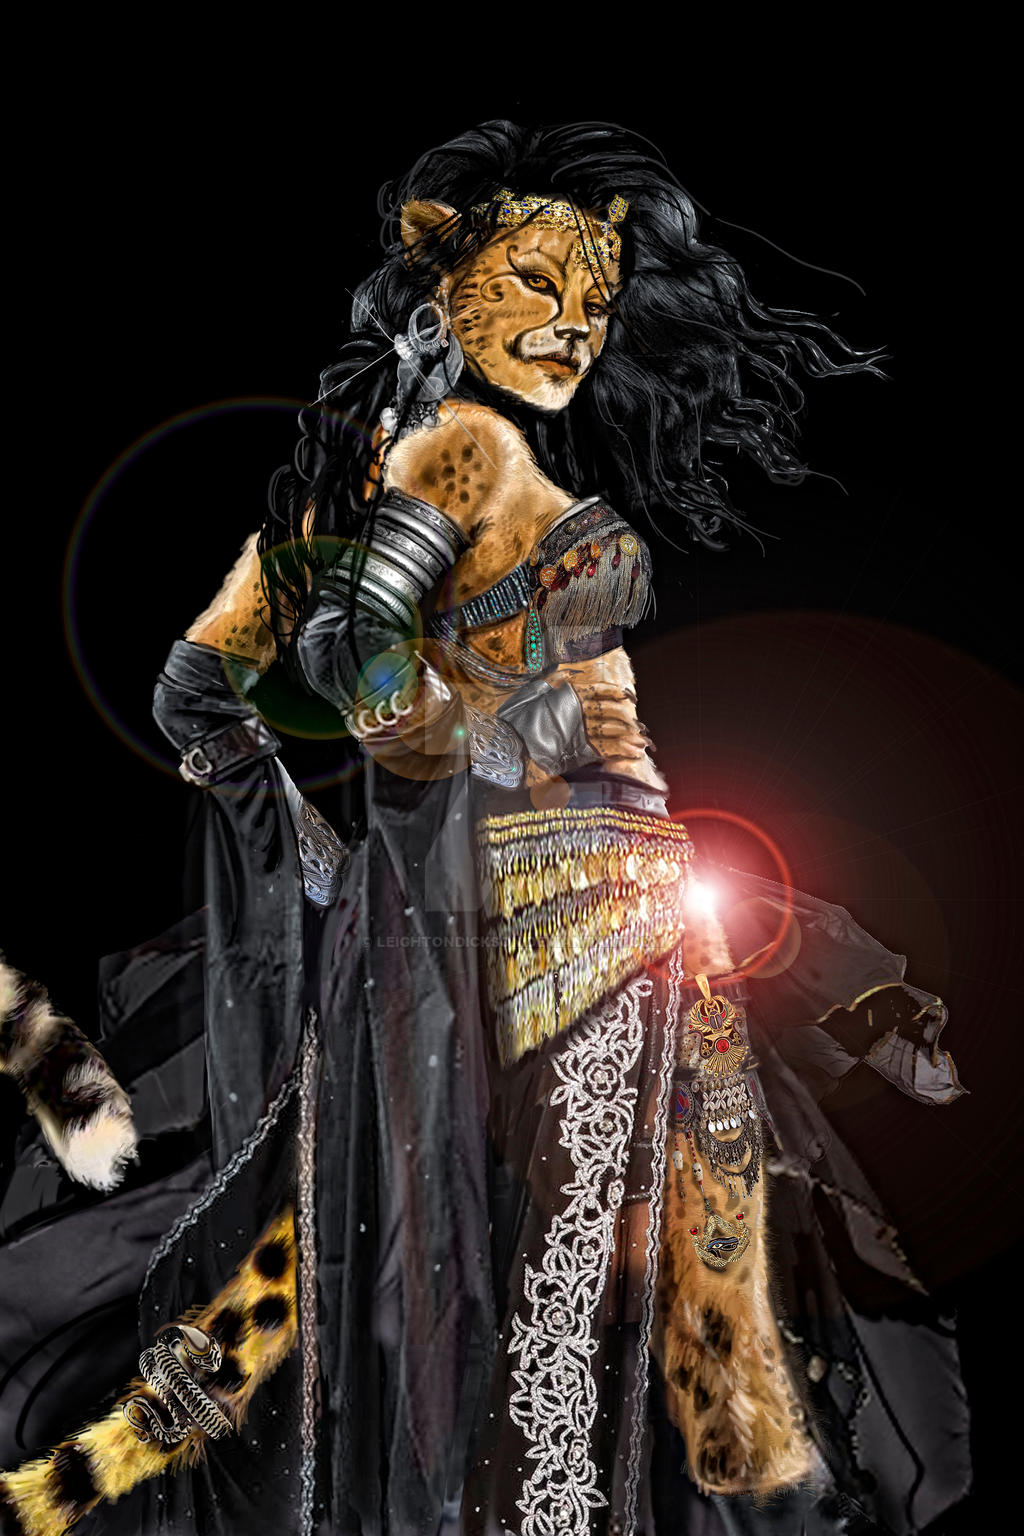 Cheetah Gypsy Woman - Sherah by leightondickson on DeviantArt